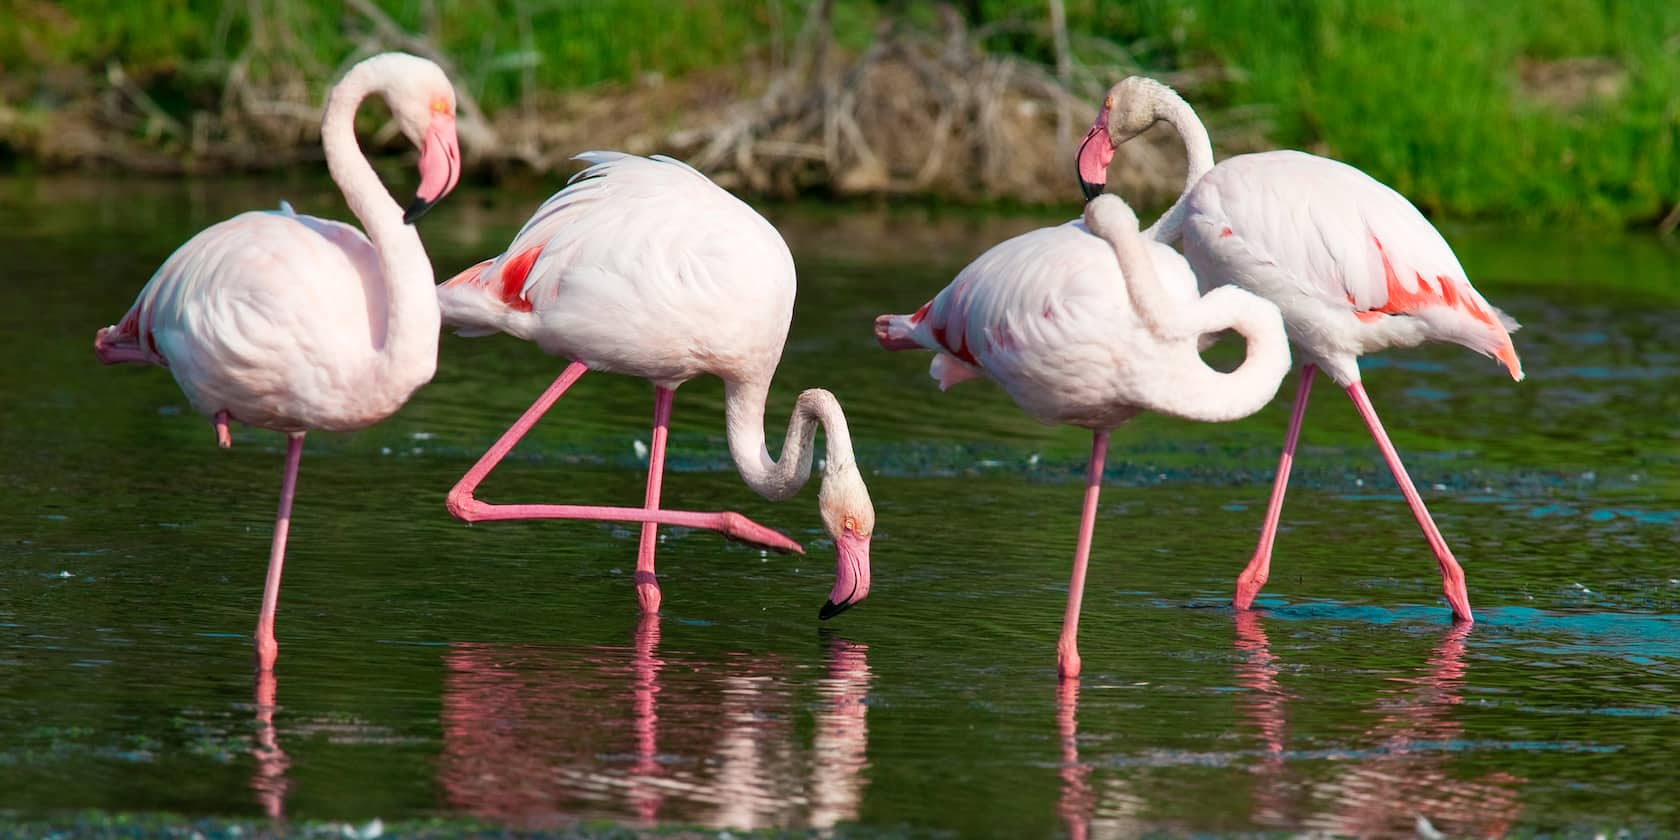 Several flamingos stand in water